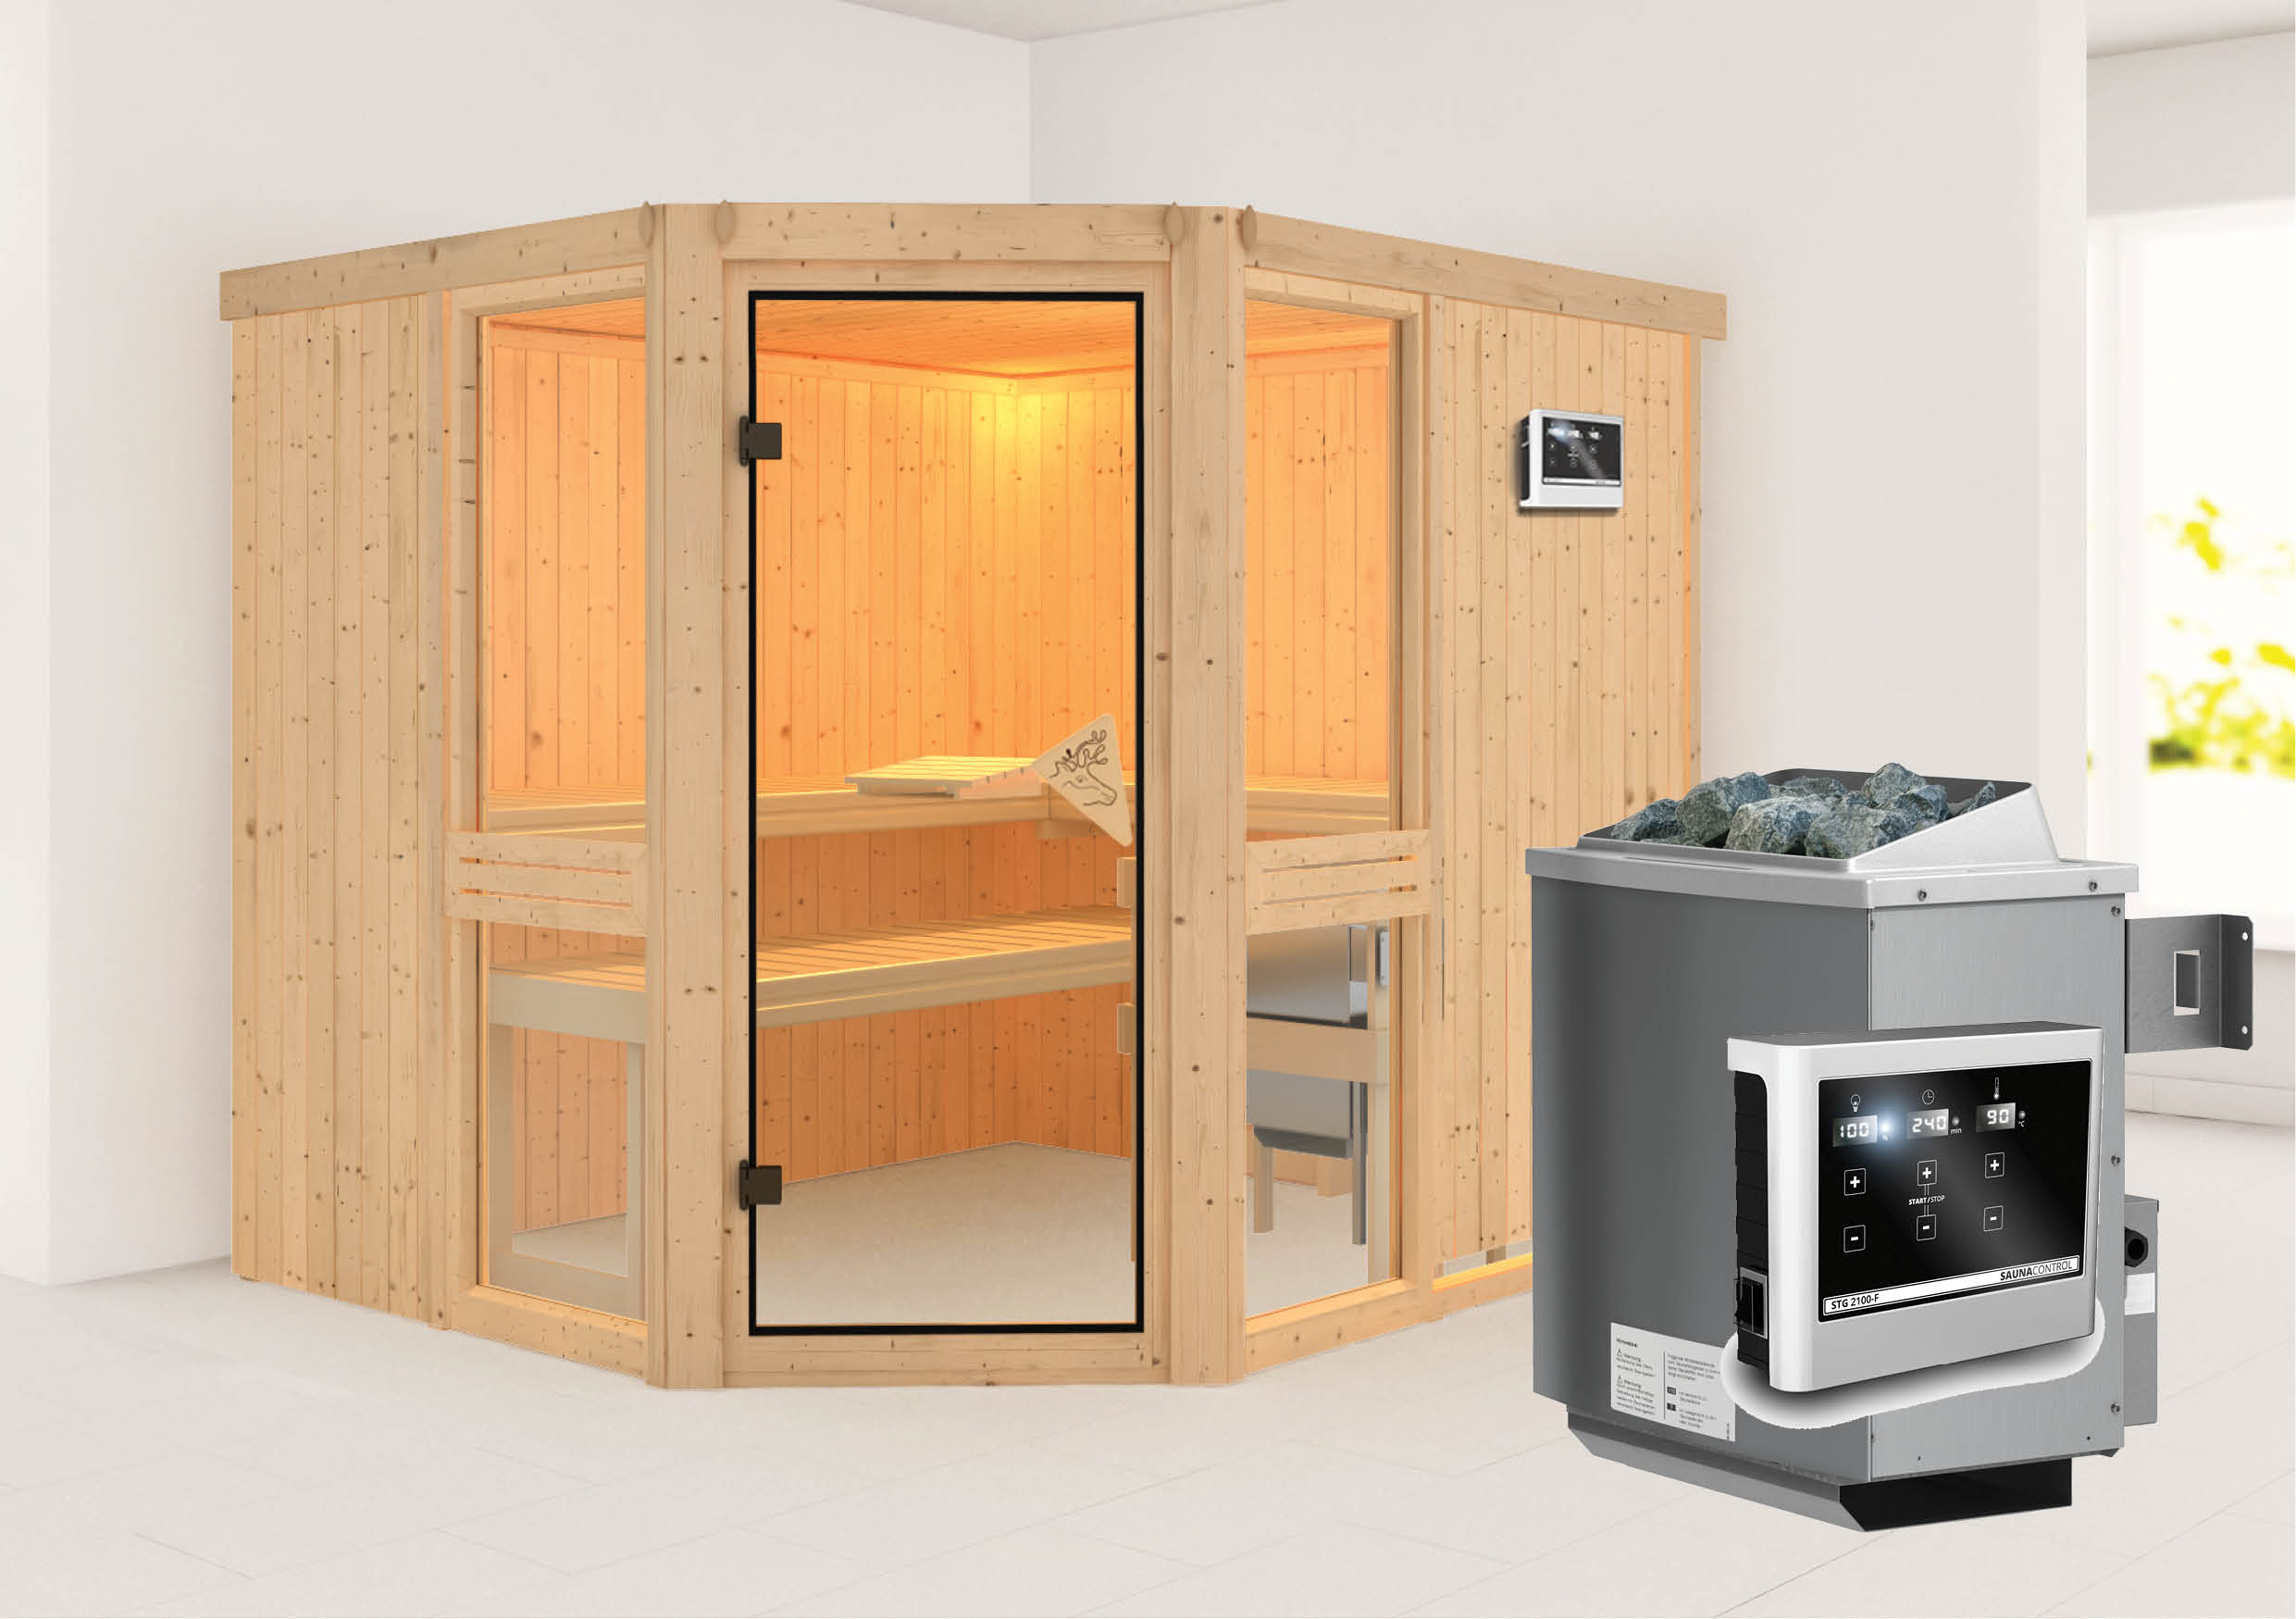 sauna amelia 3 2 31 x 1 96 m 68 mm mit 9 kw ofen saunakabine elementsauna ebay. Black Bedroom Furniture Sets. Home Design Ideas